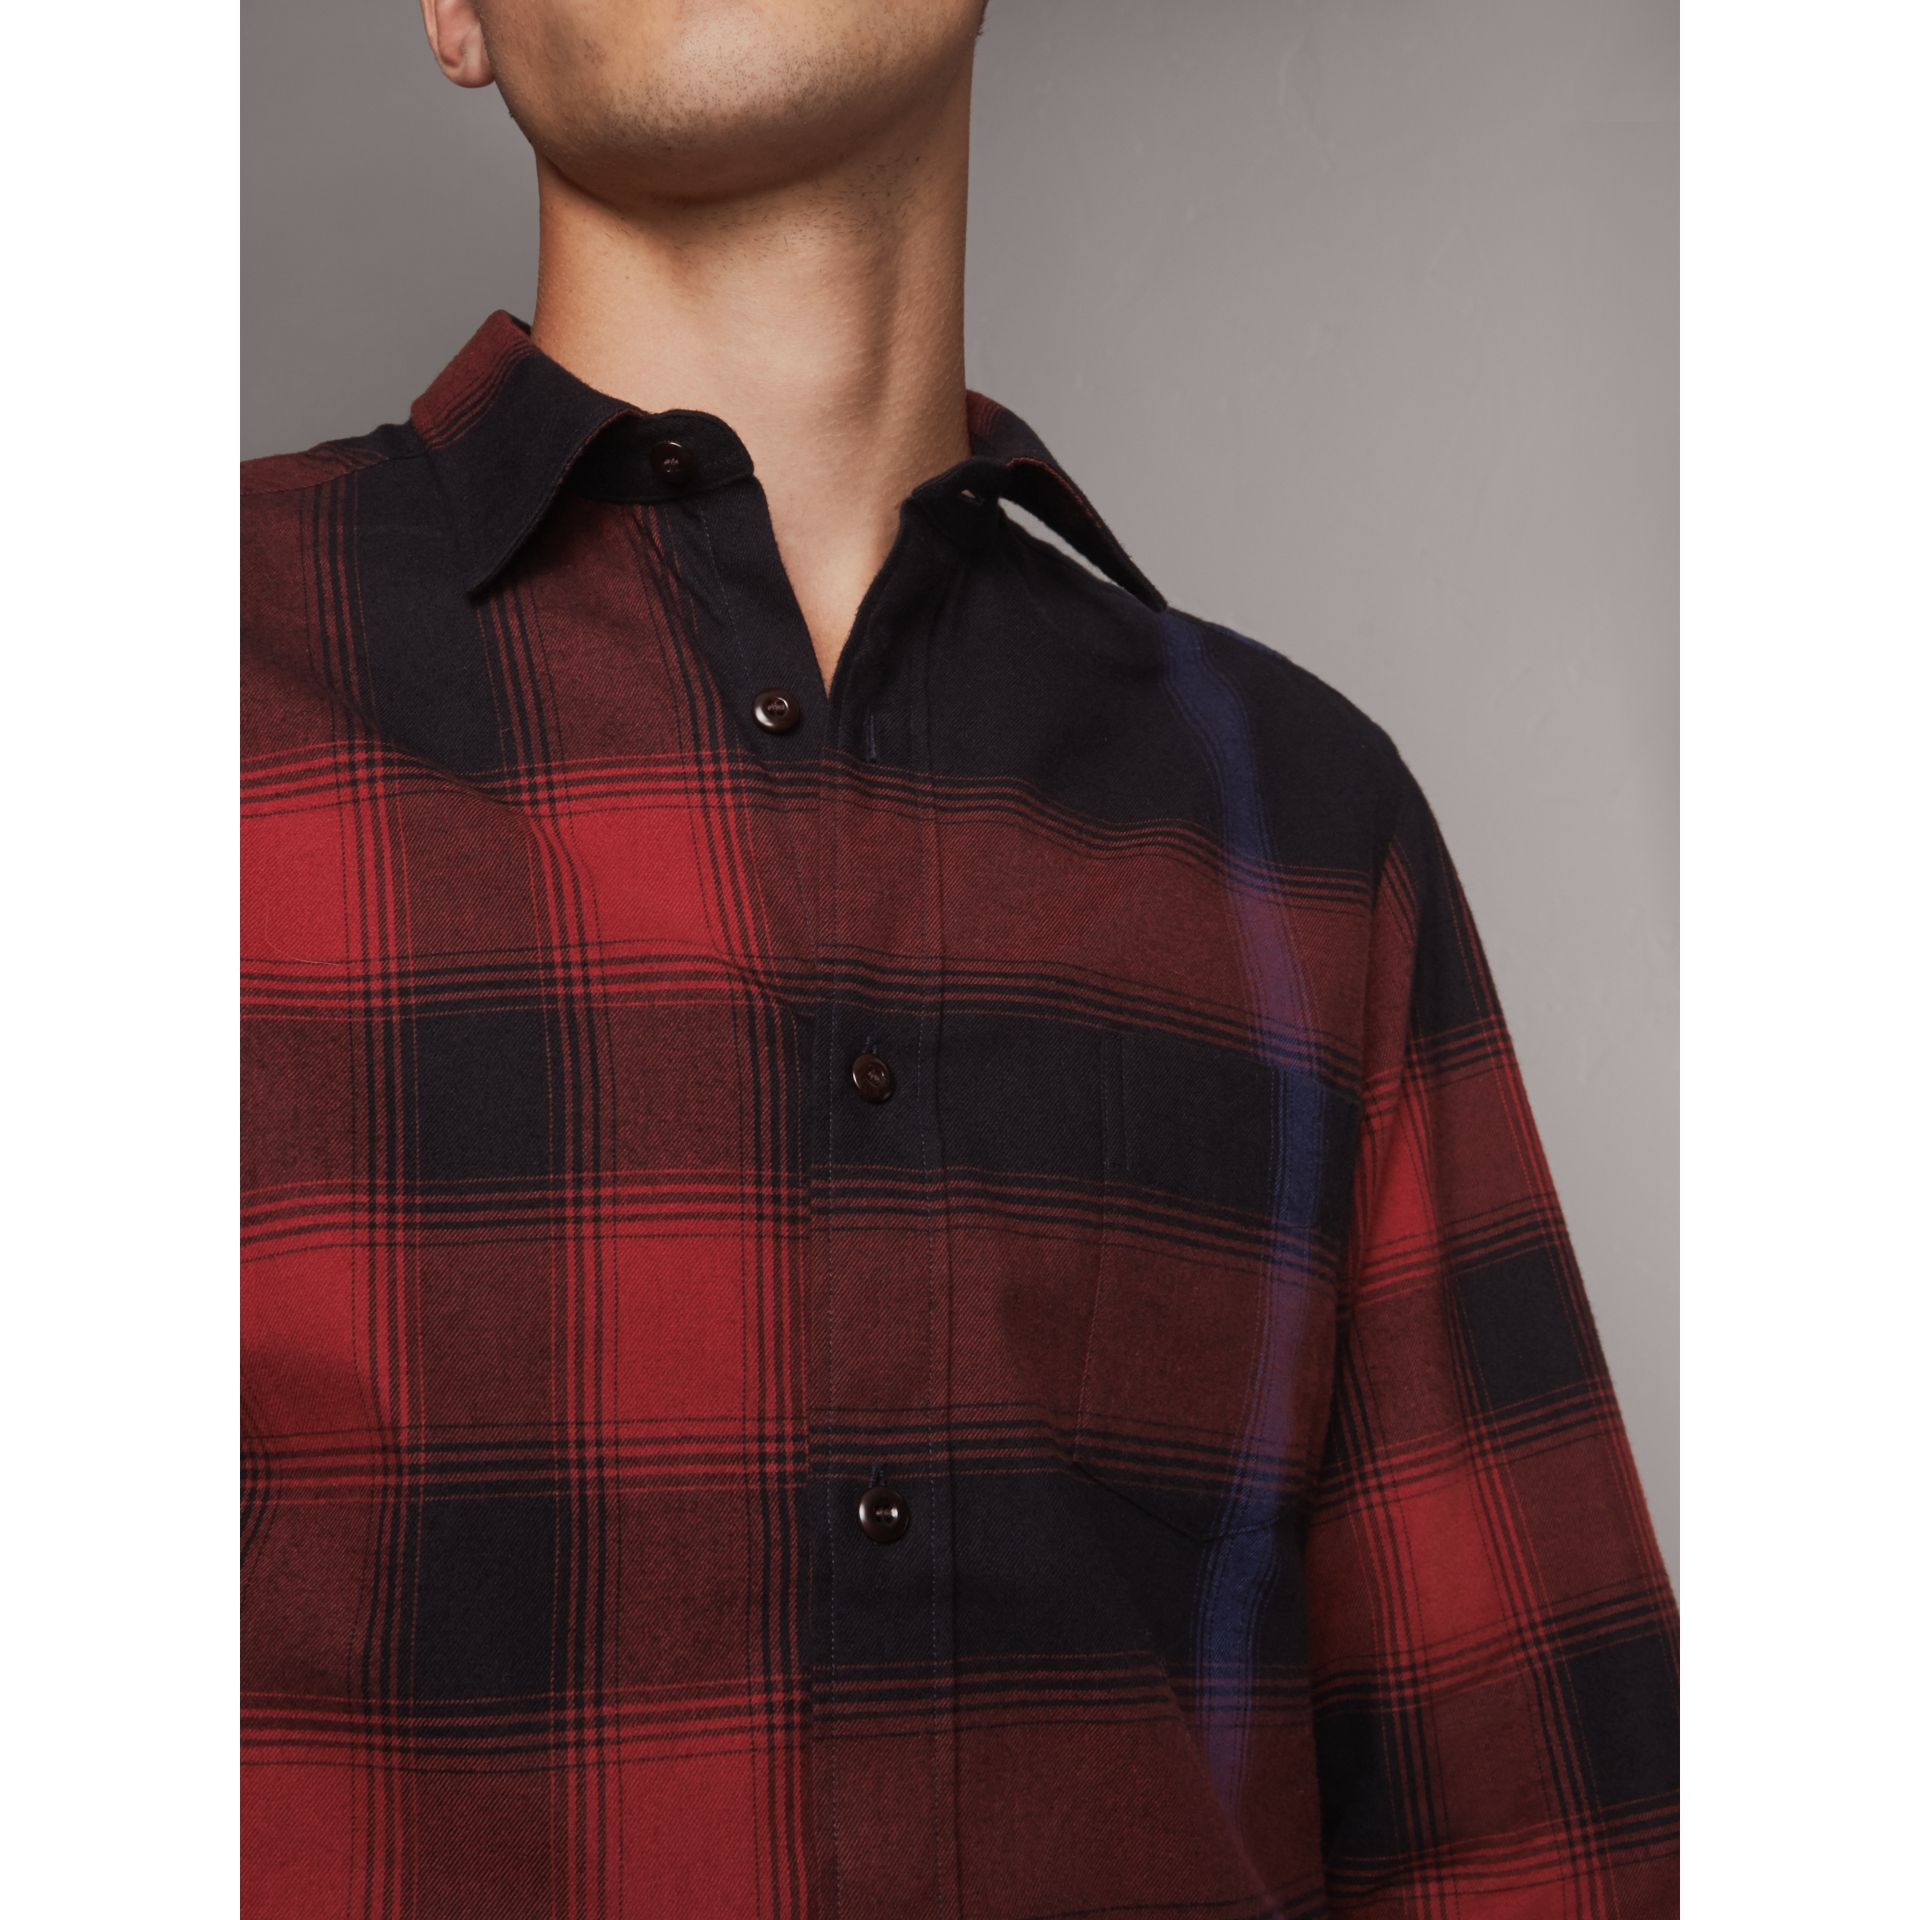 Ombré Check Cotton Flannel Shirt in Crimson Red - Men | Burberry United Kingdom - gallery image 1